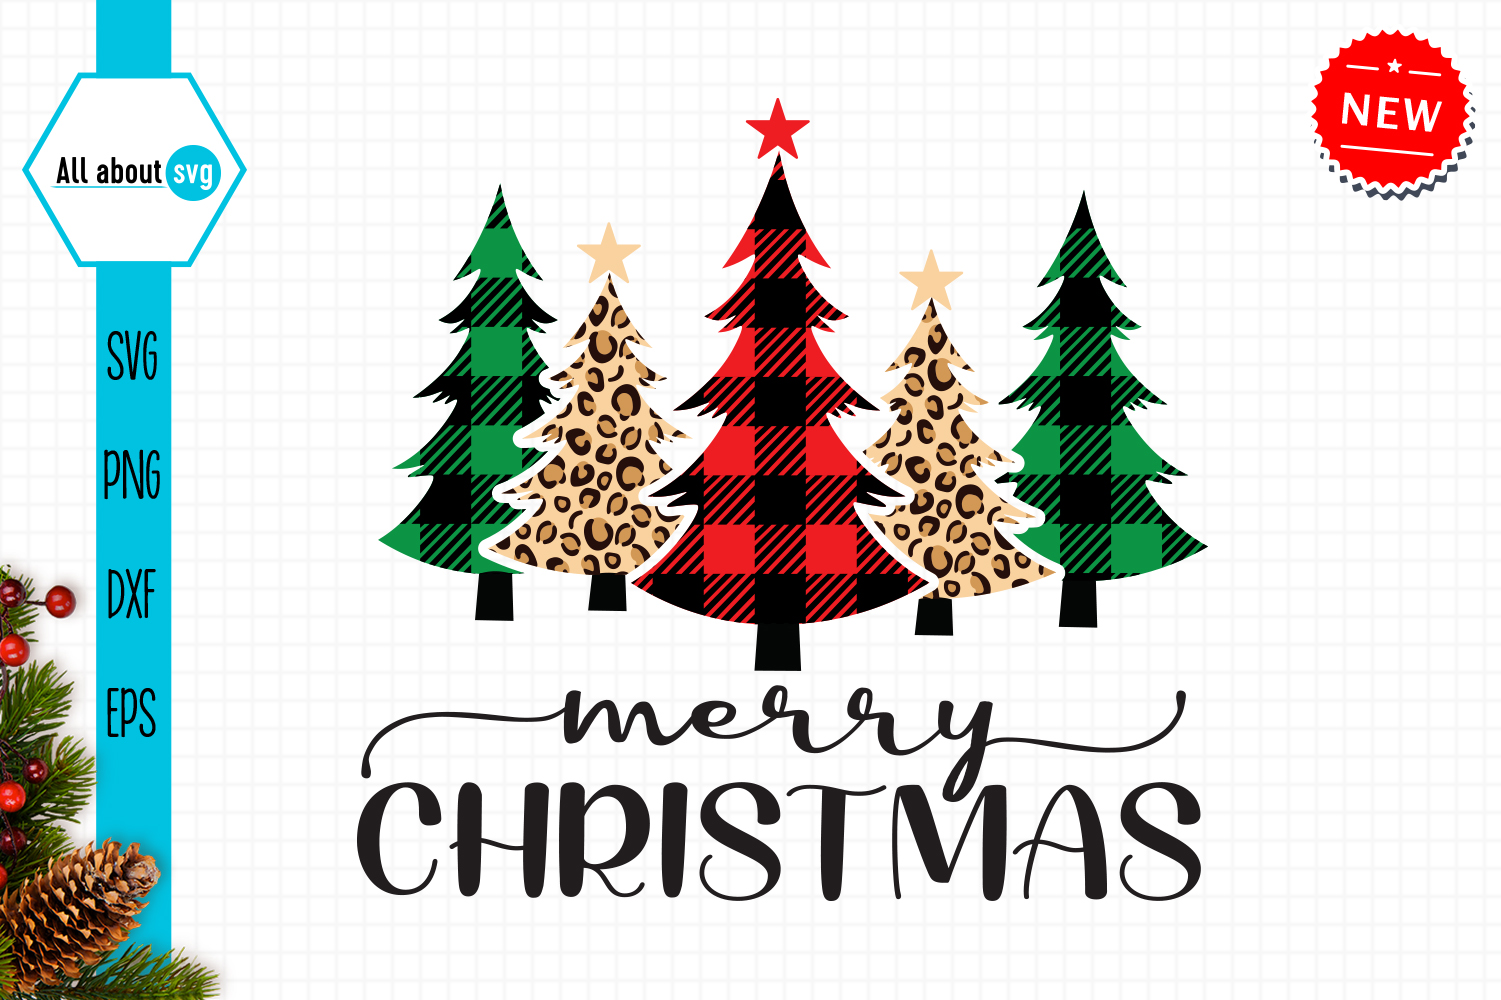 Buffalo Plaid Christmas Trees Svg Graphic By All About Svg Creative Fabrica